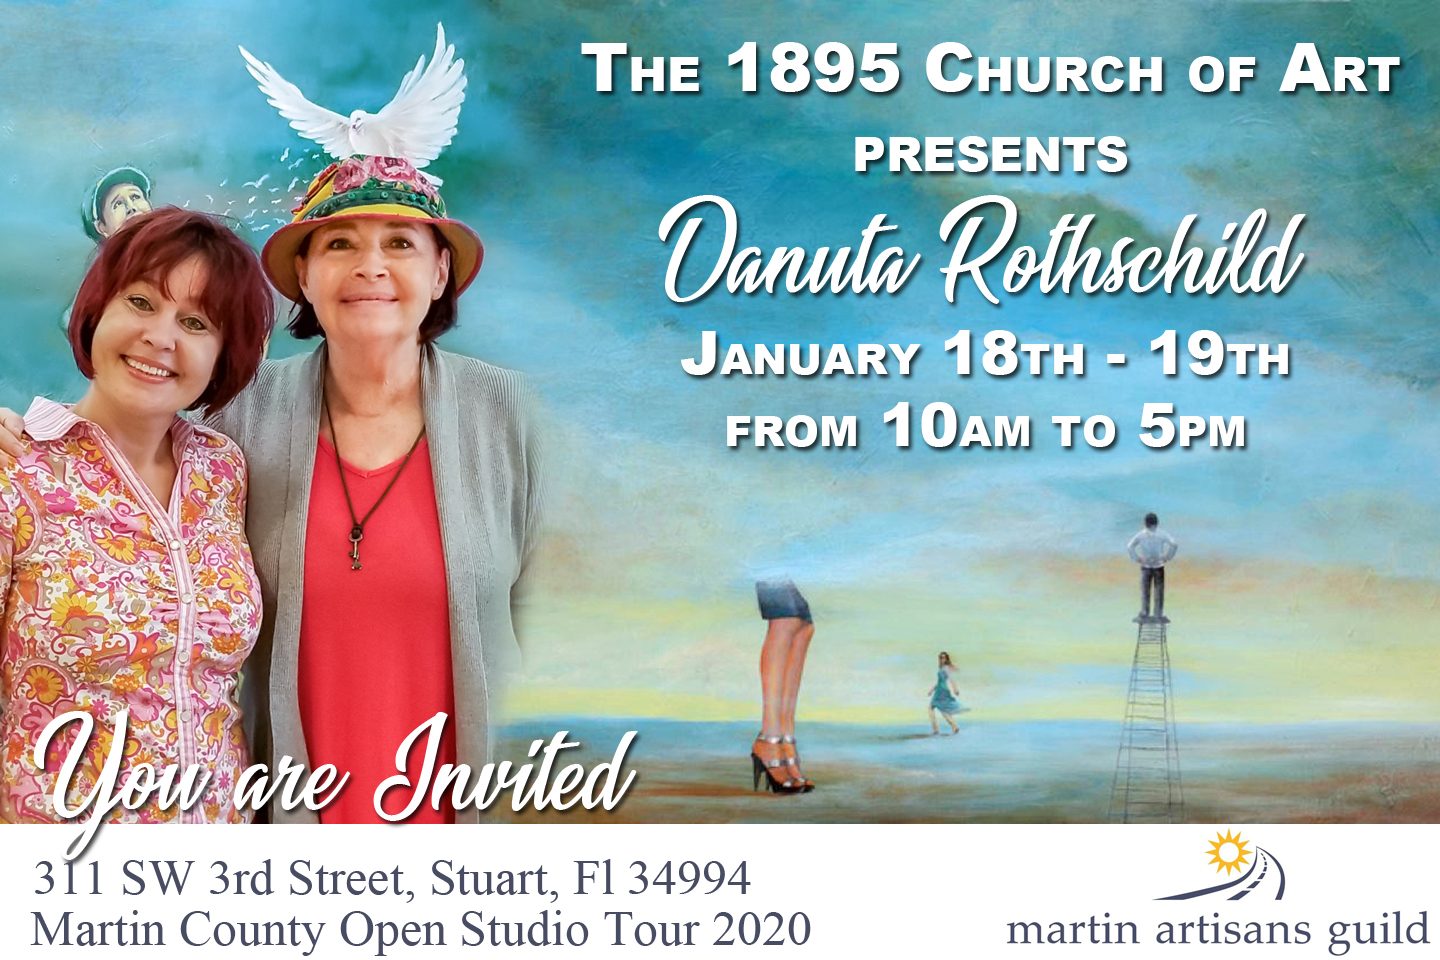 Danuta Rothschild Art Show at the 1895 Church of Art - MCLM Media Pro Social Media Marketing in Stuart, Florida